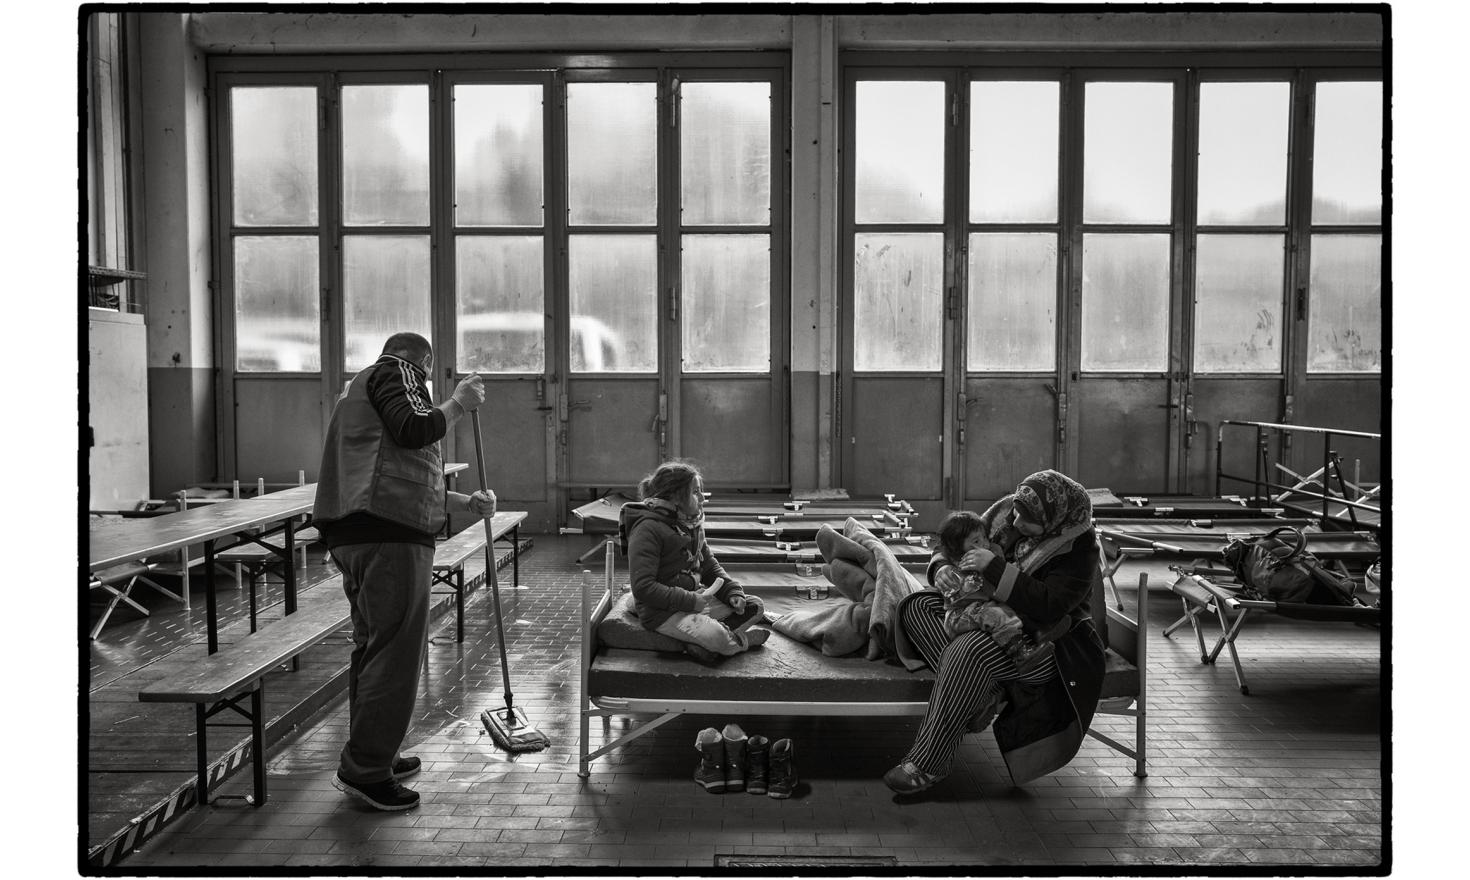 Paul-Hallen' registration centre, Passau, Germany. When the refugees arrive in this small German town on the border with Austria the end of their journey is almost in sight. Here they can finally apply for asylum so they can stay in Europe. At the 'Paul-H